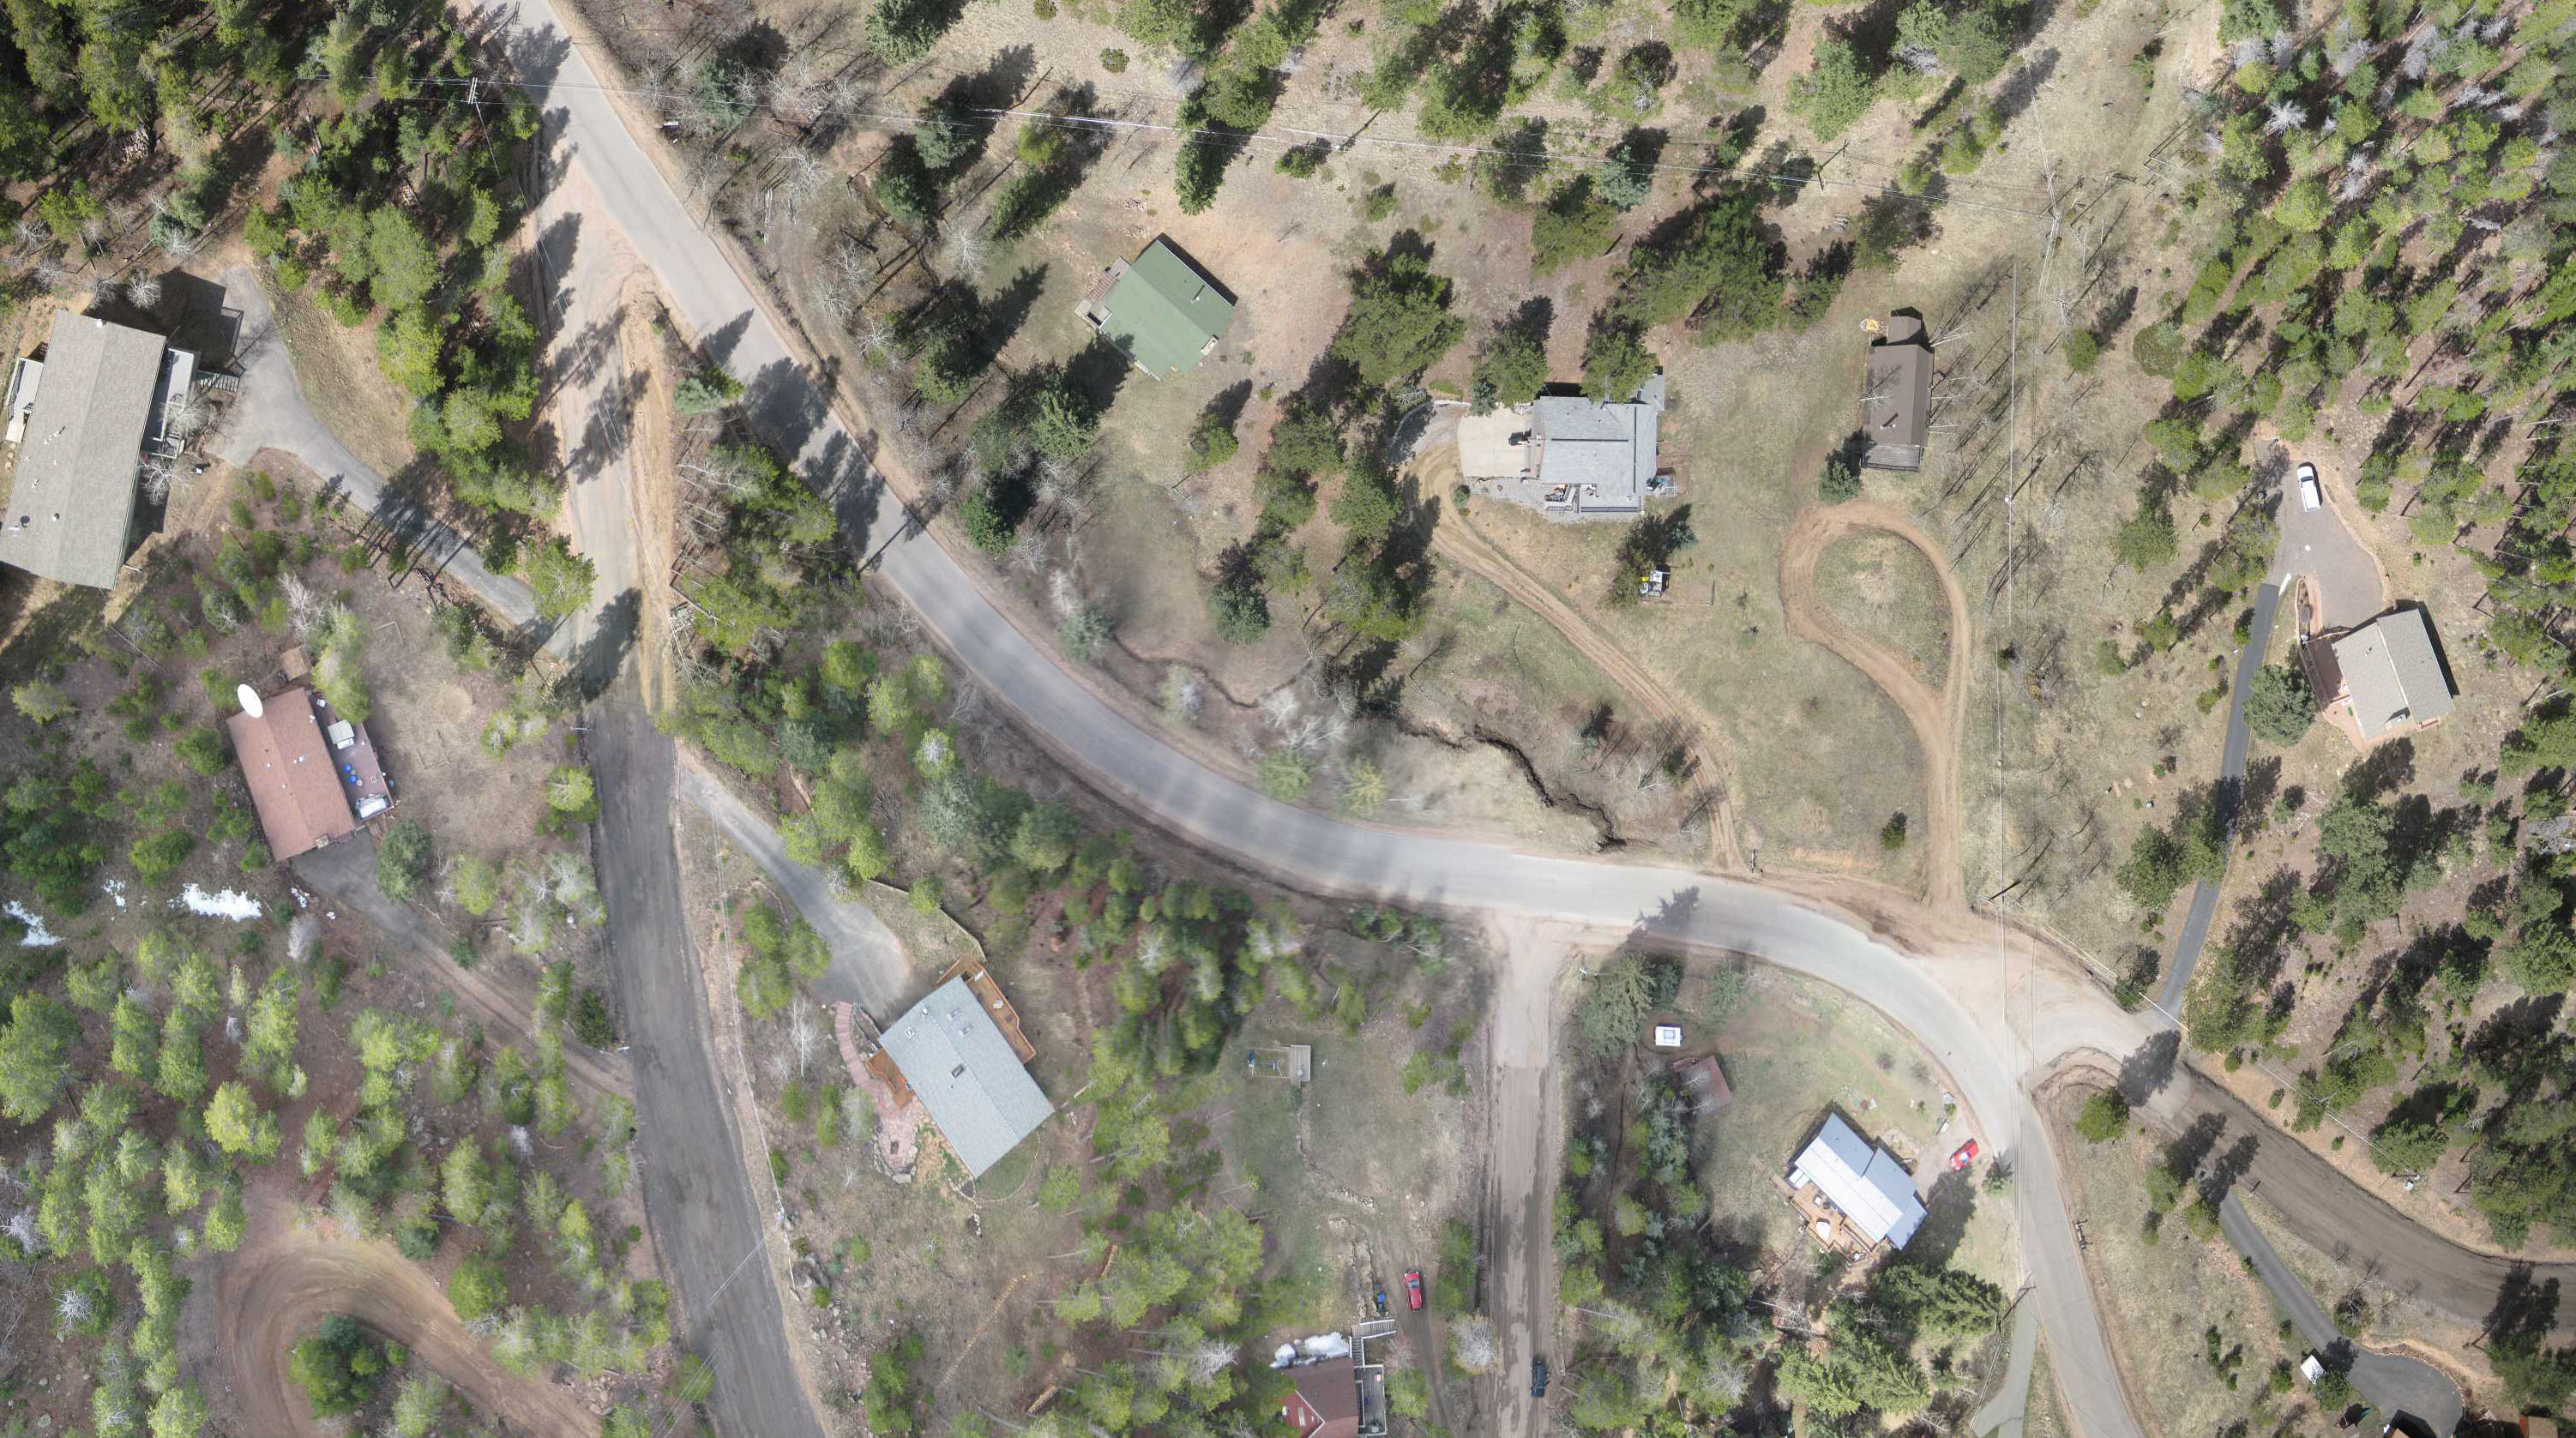 Evergreen area aerial orthophoto